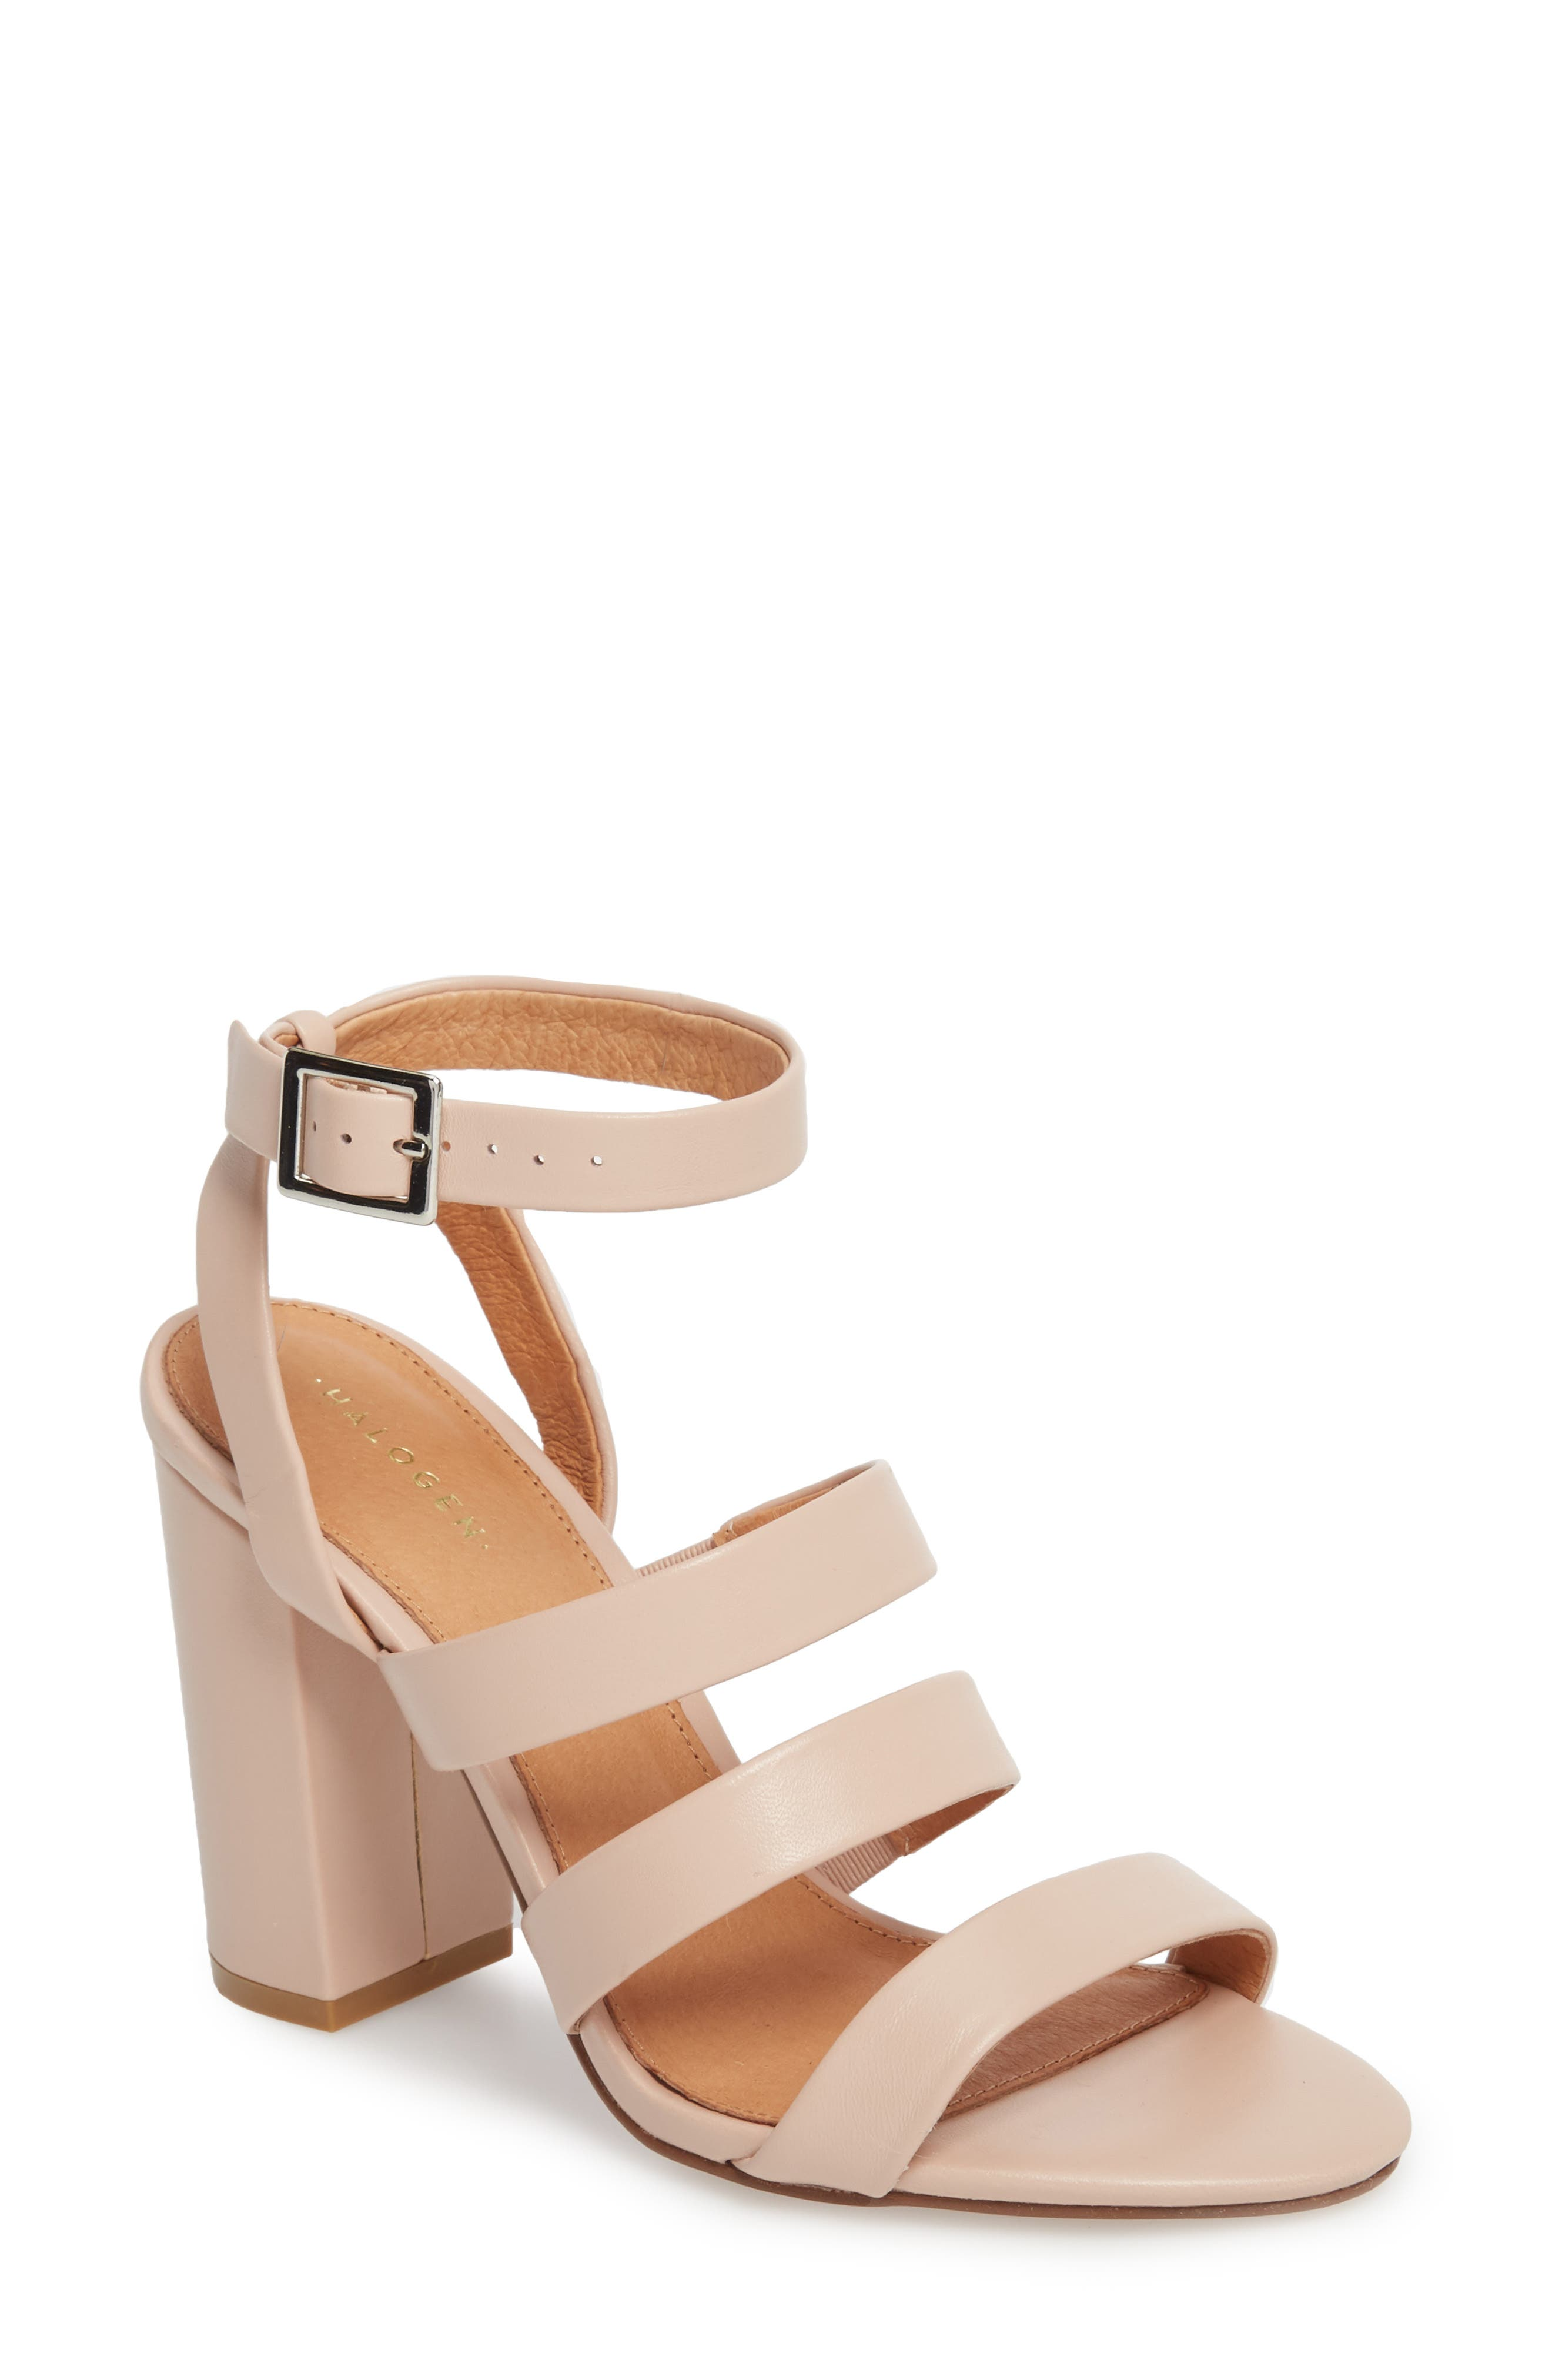 Rocco Sandal,                         Main,                         color, BLUSH LEATHER